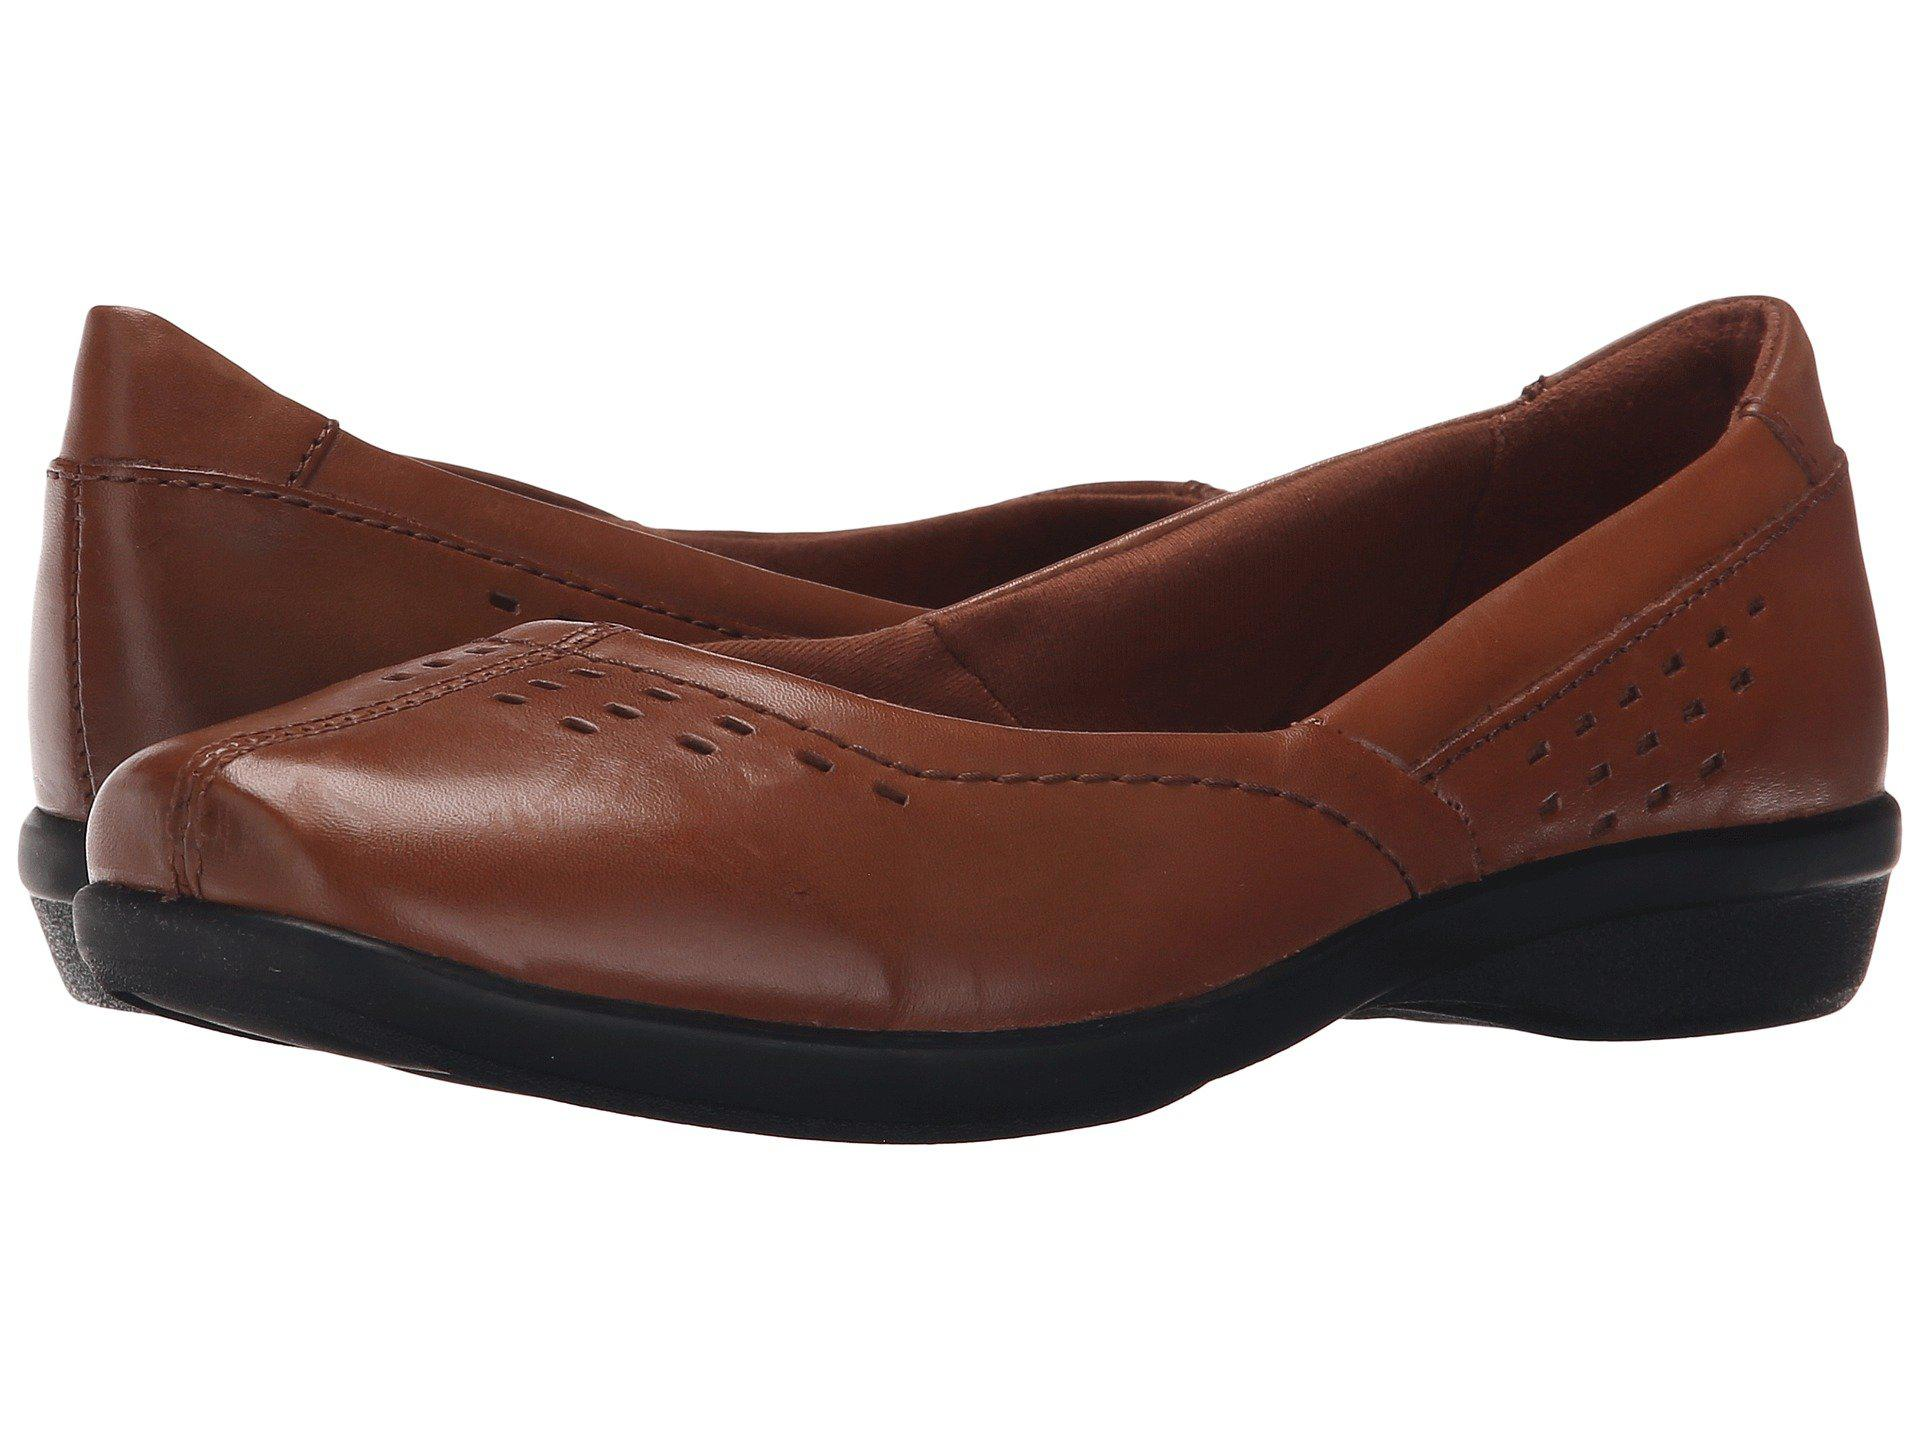 Womens Shoes Clarks Haydn Shipper Tan Leather